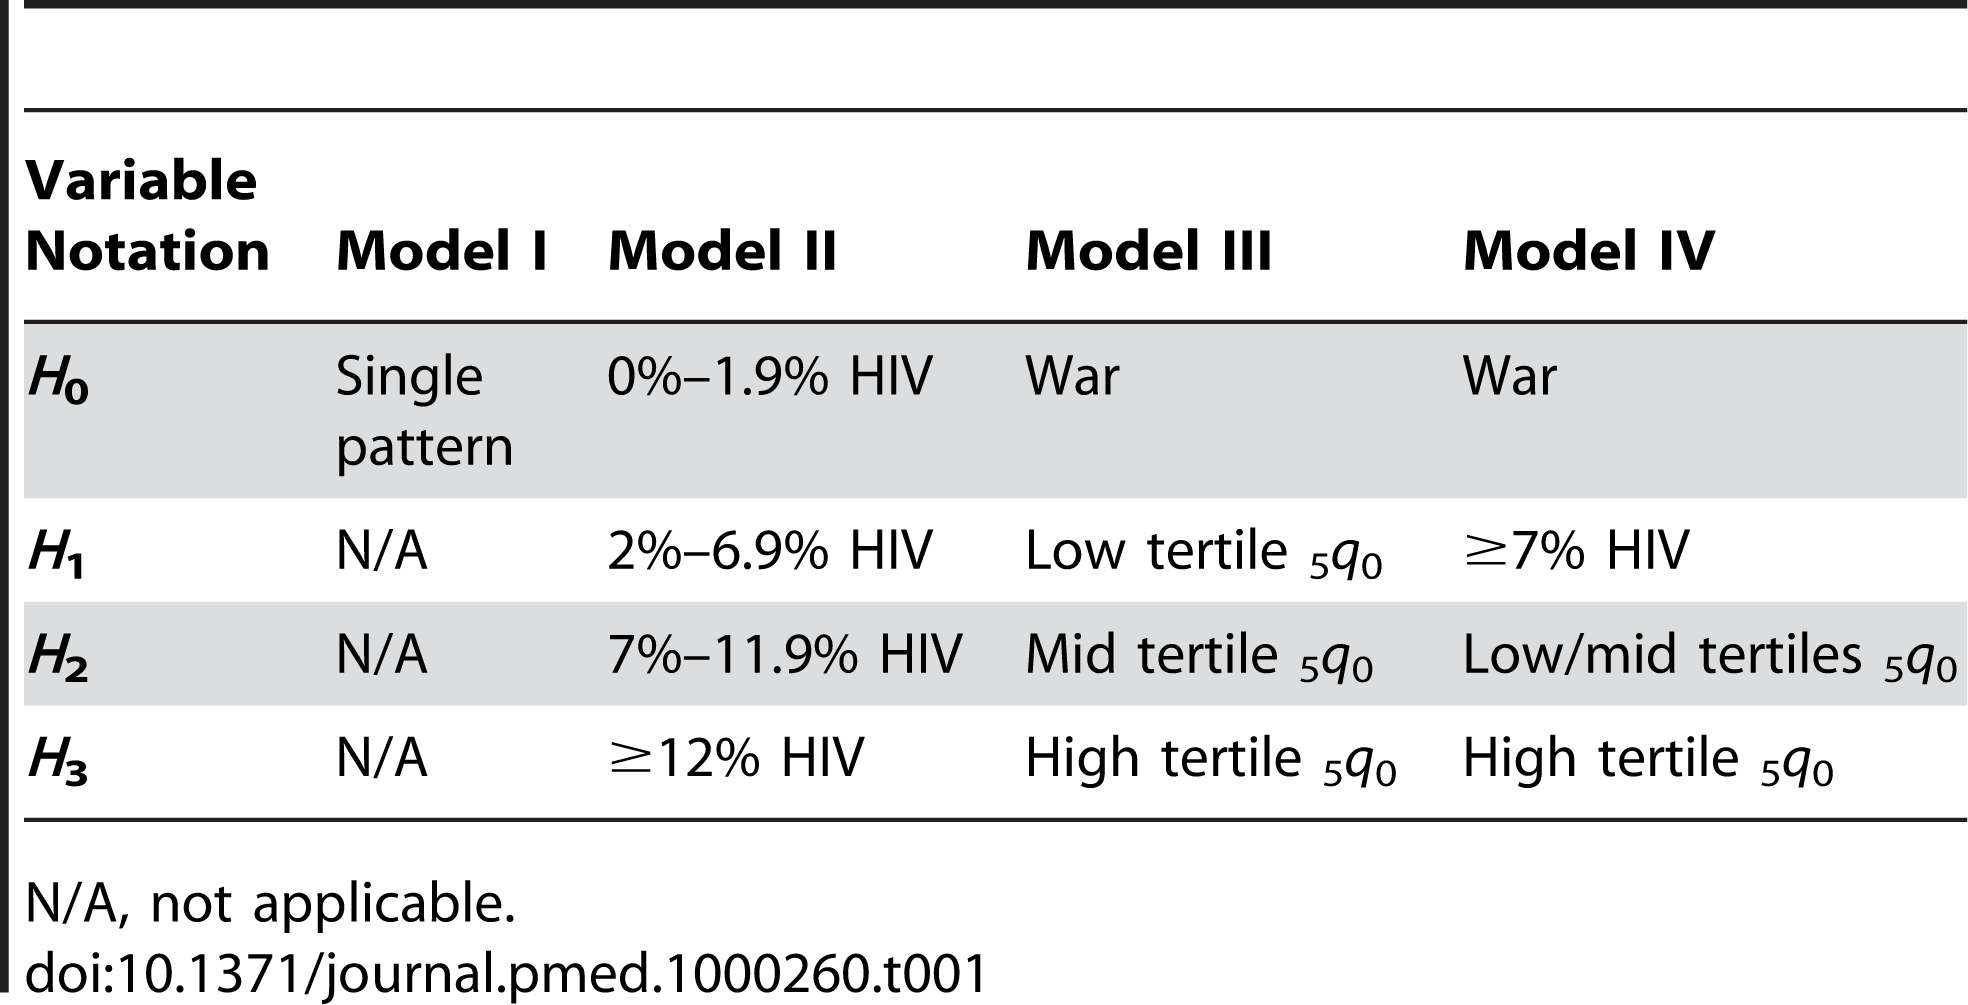 Criteria for classifying country-periods into different age-pattern groups.